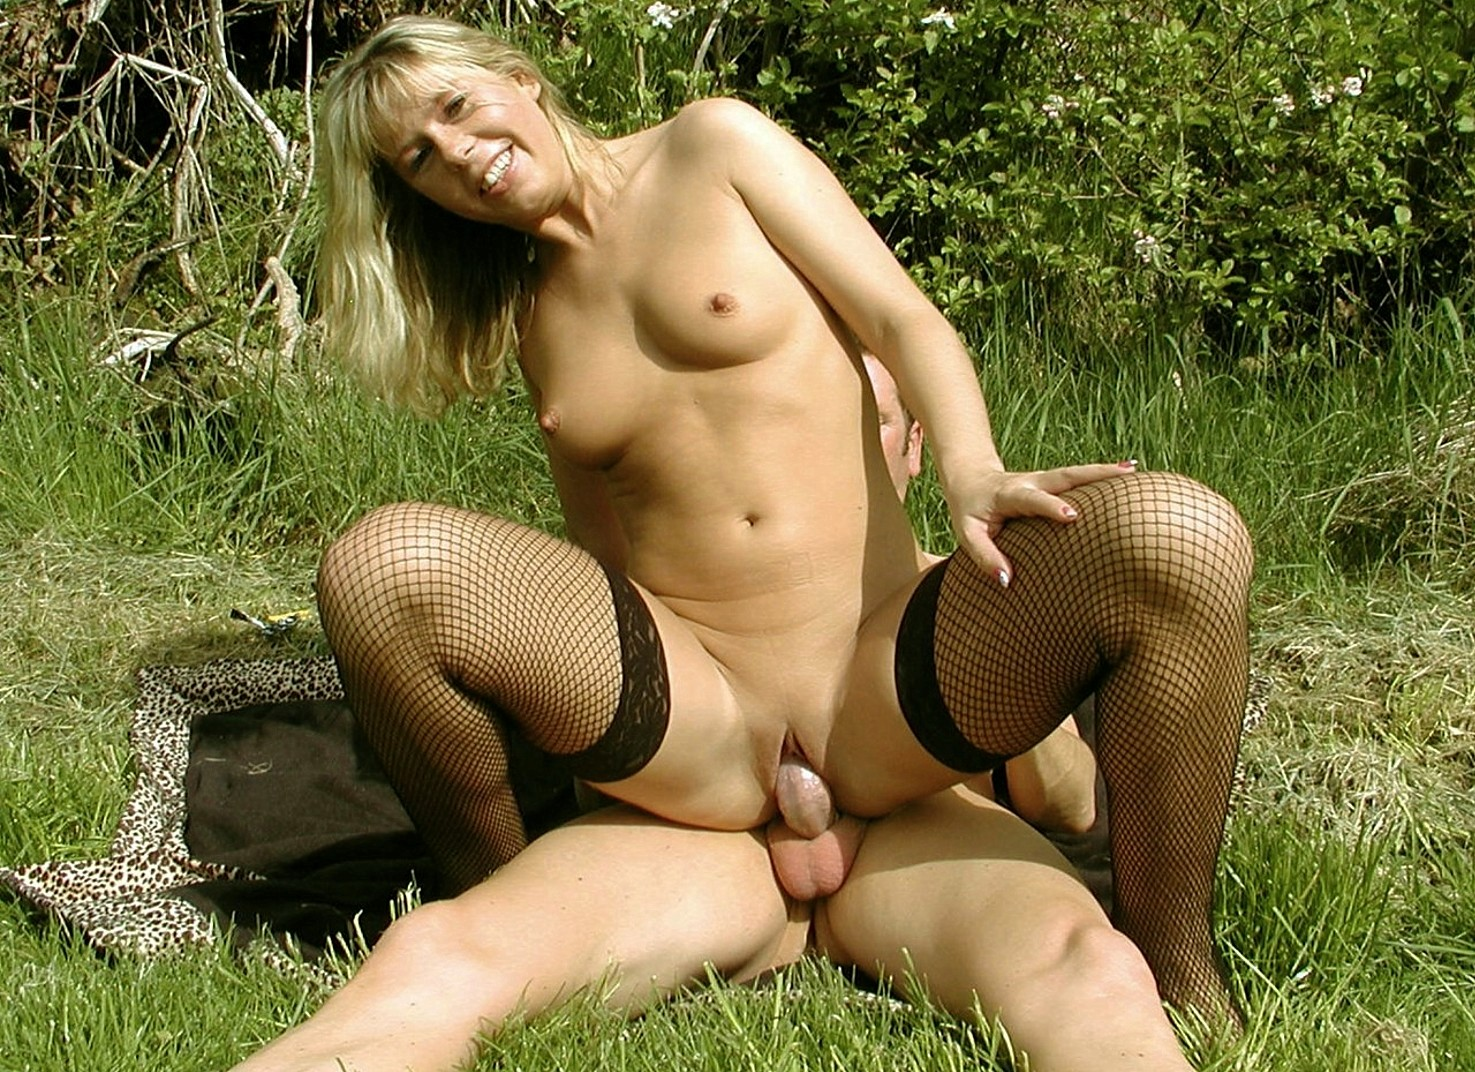 Something is. nude couples outdoors sex woods agree, excellent